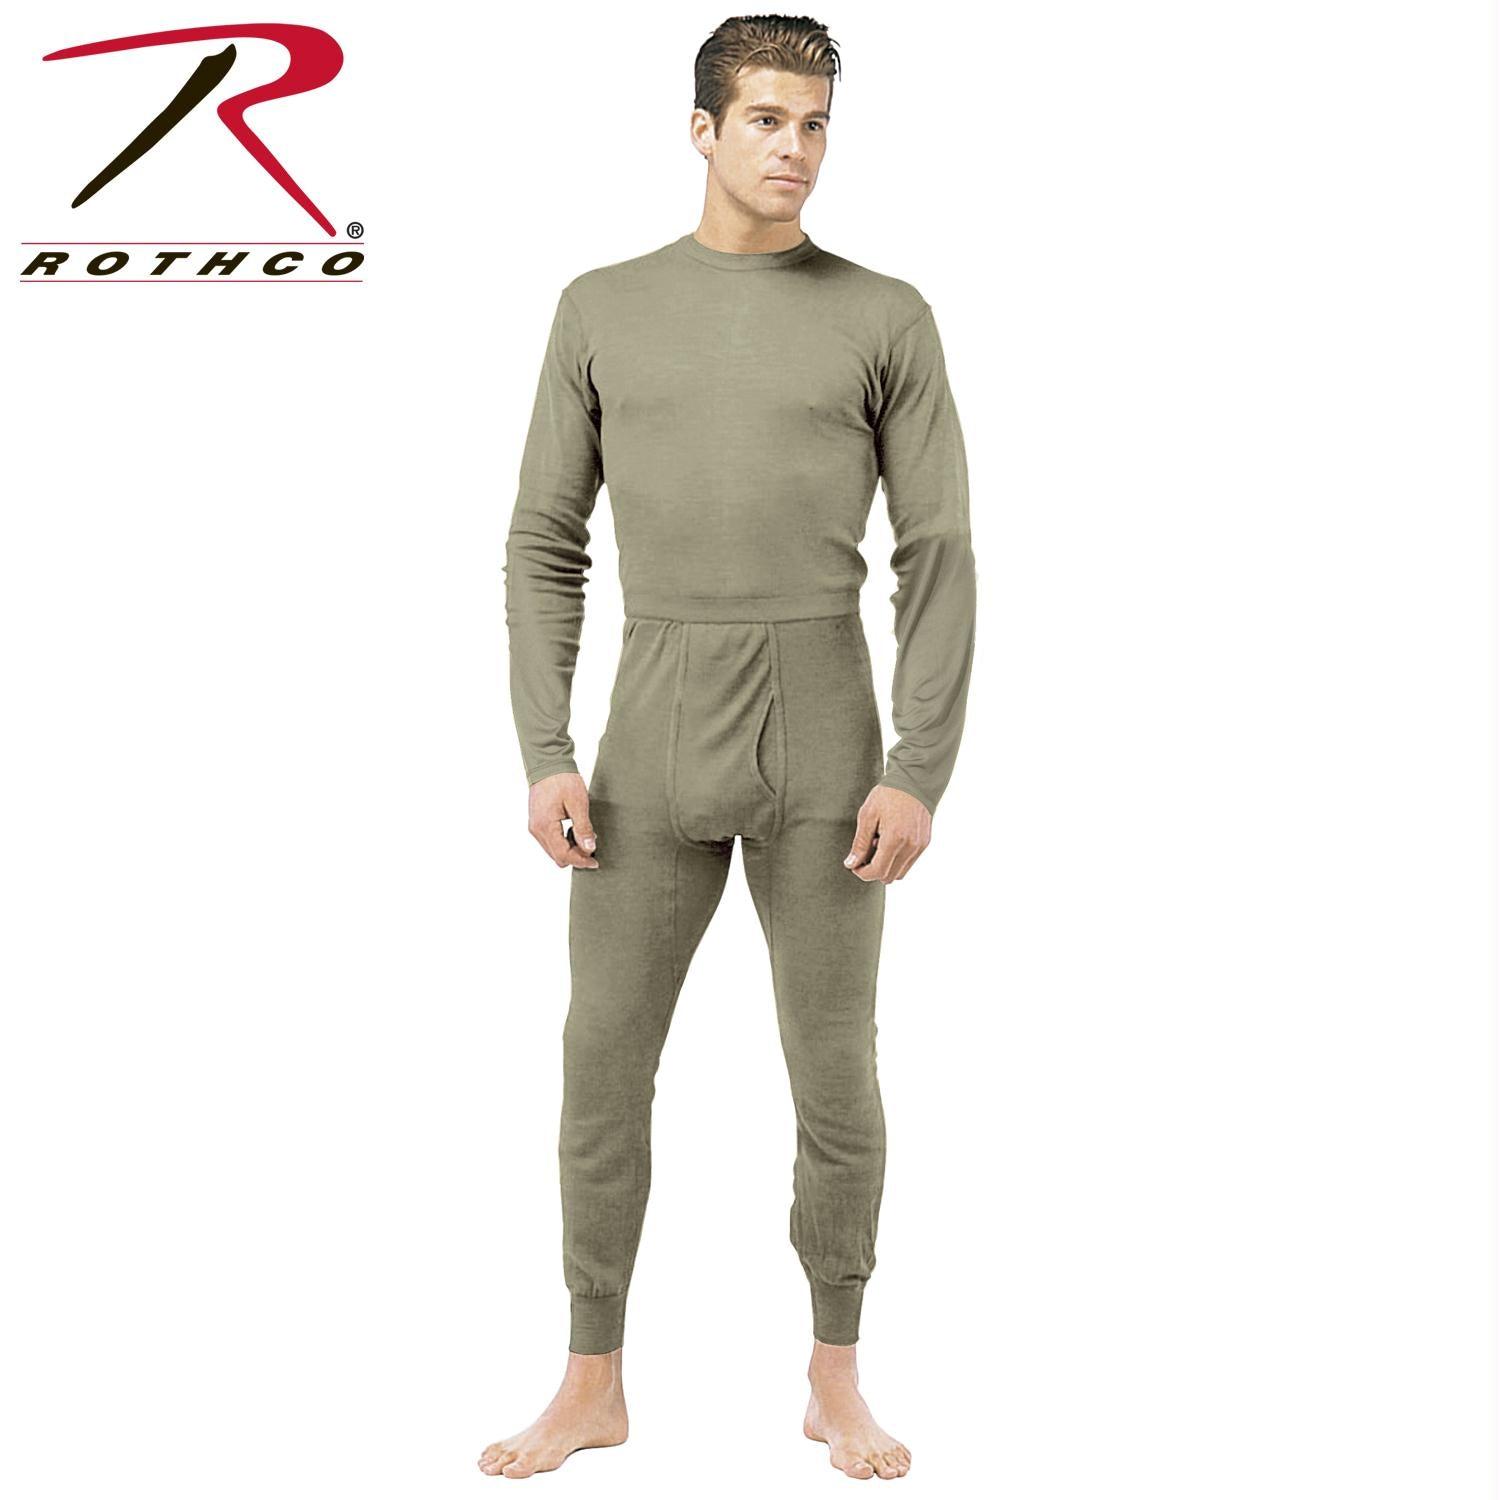 Rothco Gen III Silk Weight Underwear Top - Foliage Green / S